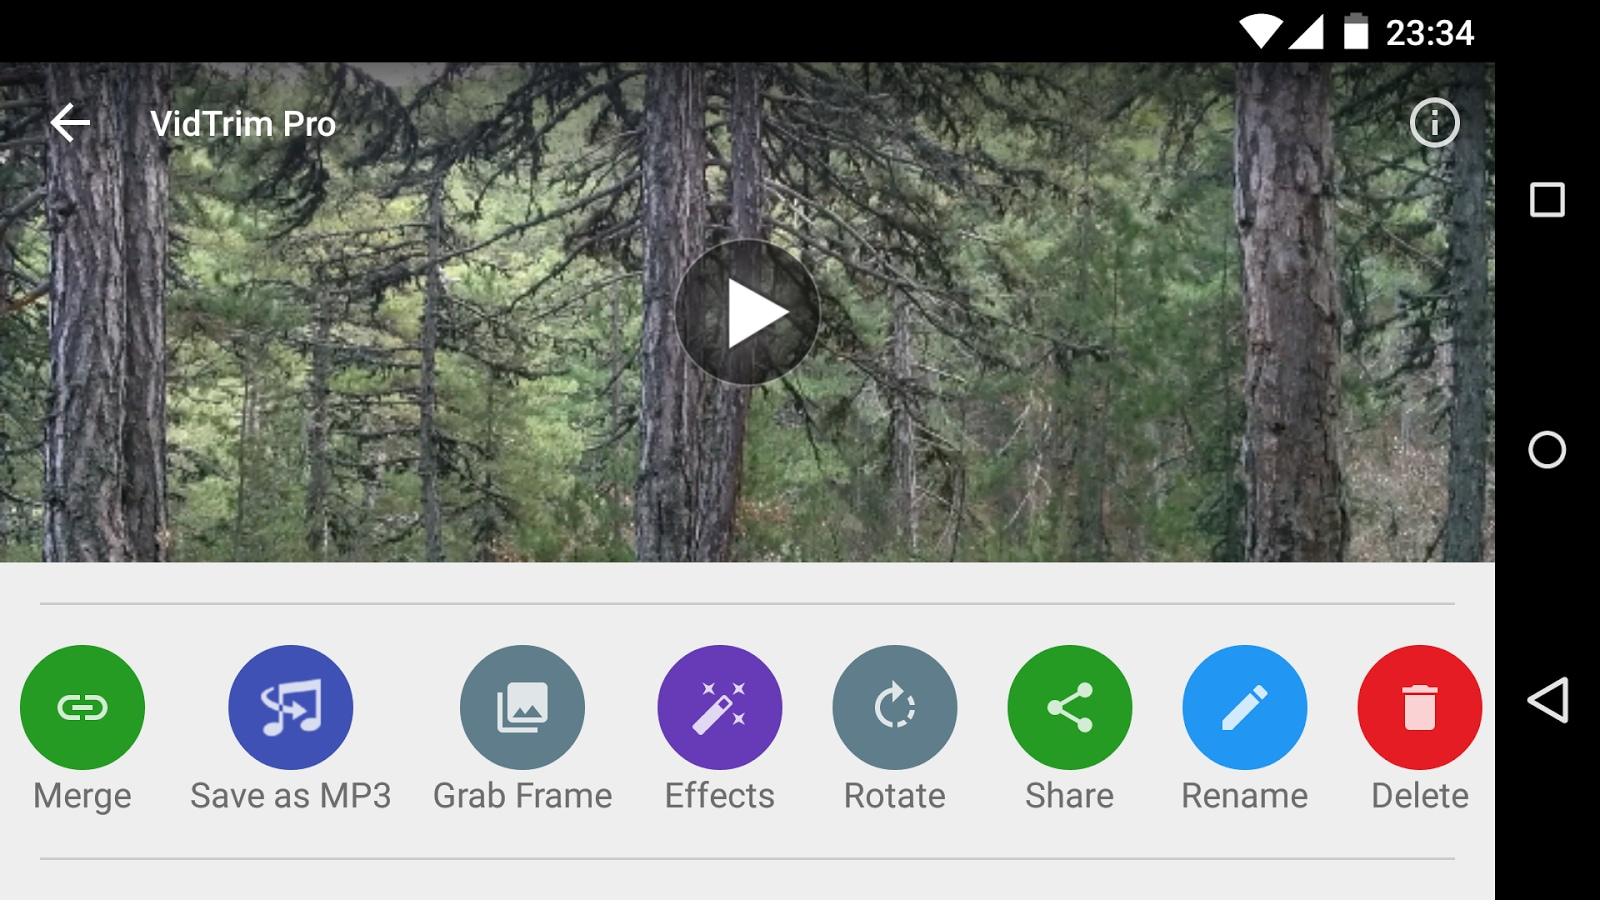 VidTrim Pro Editing Interface